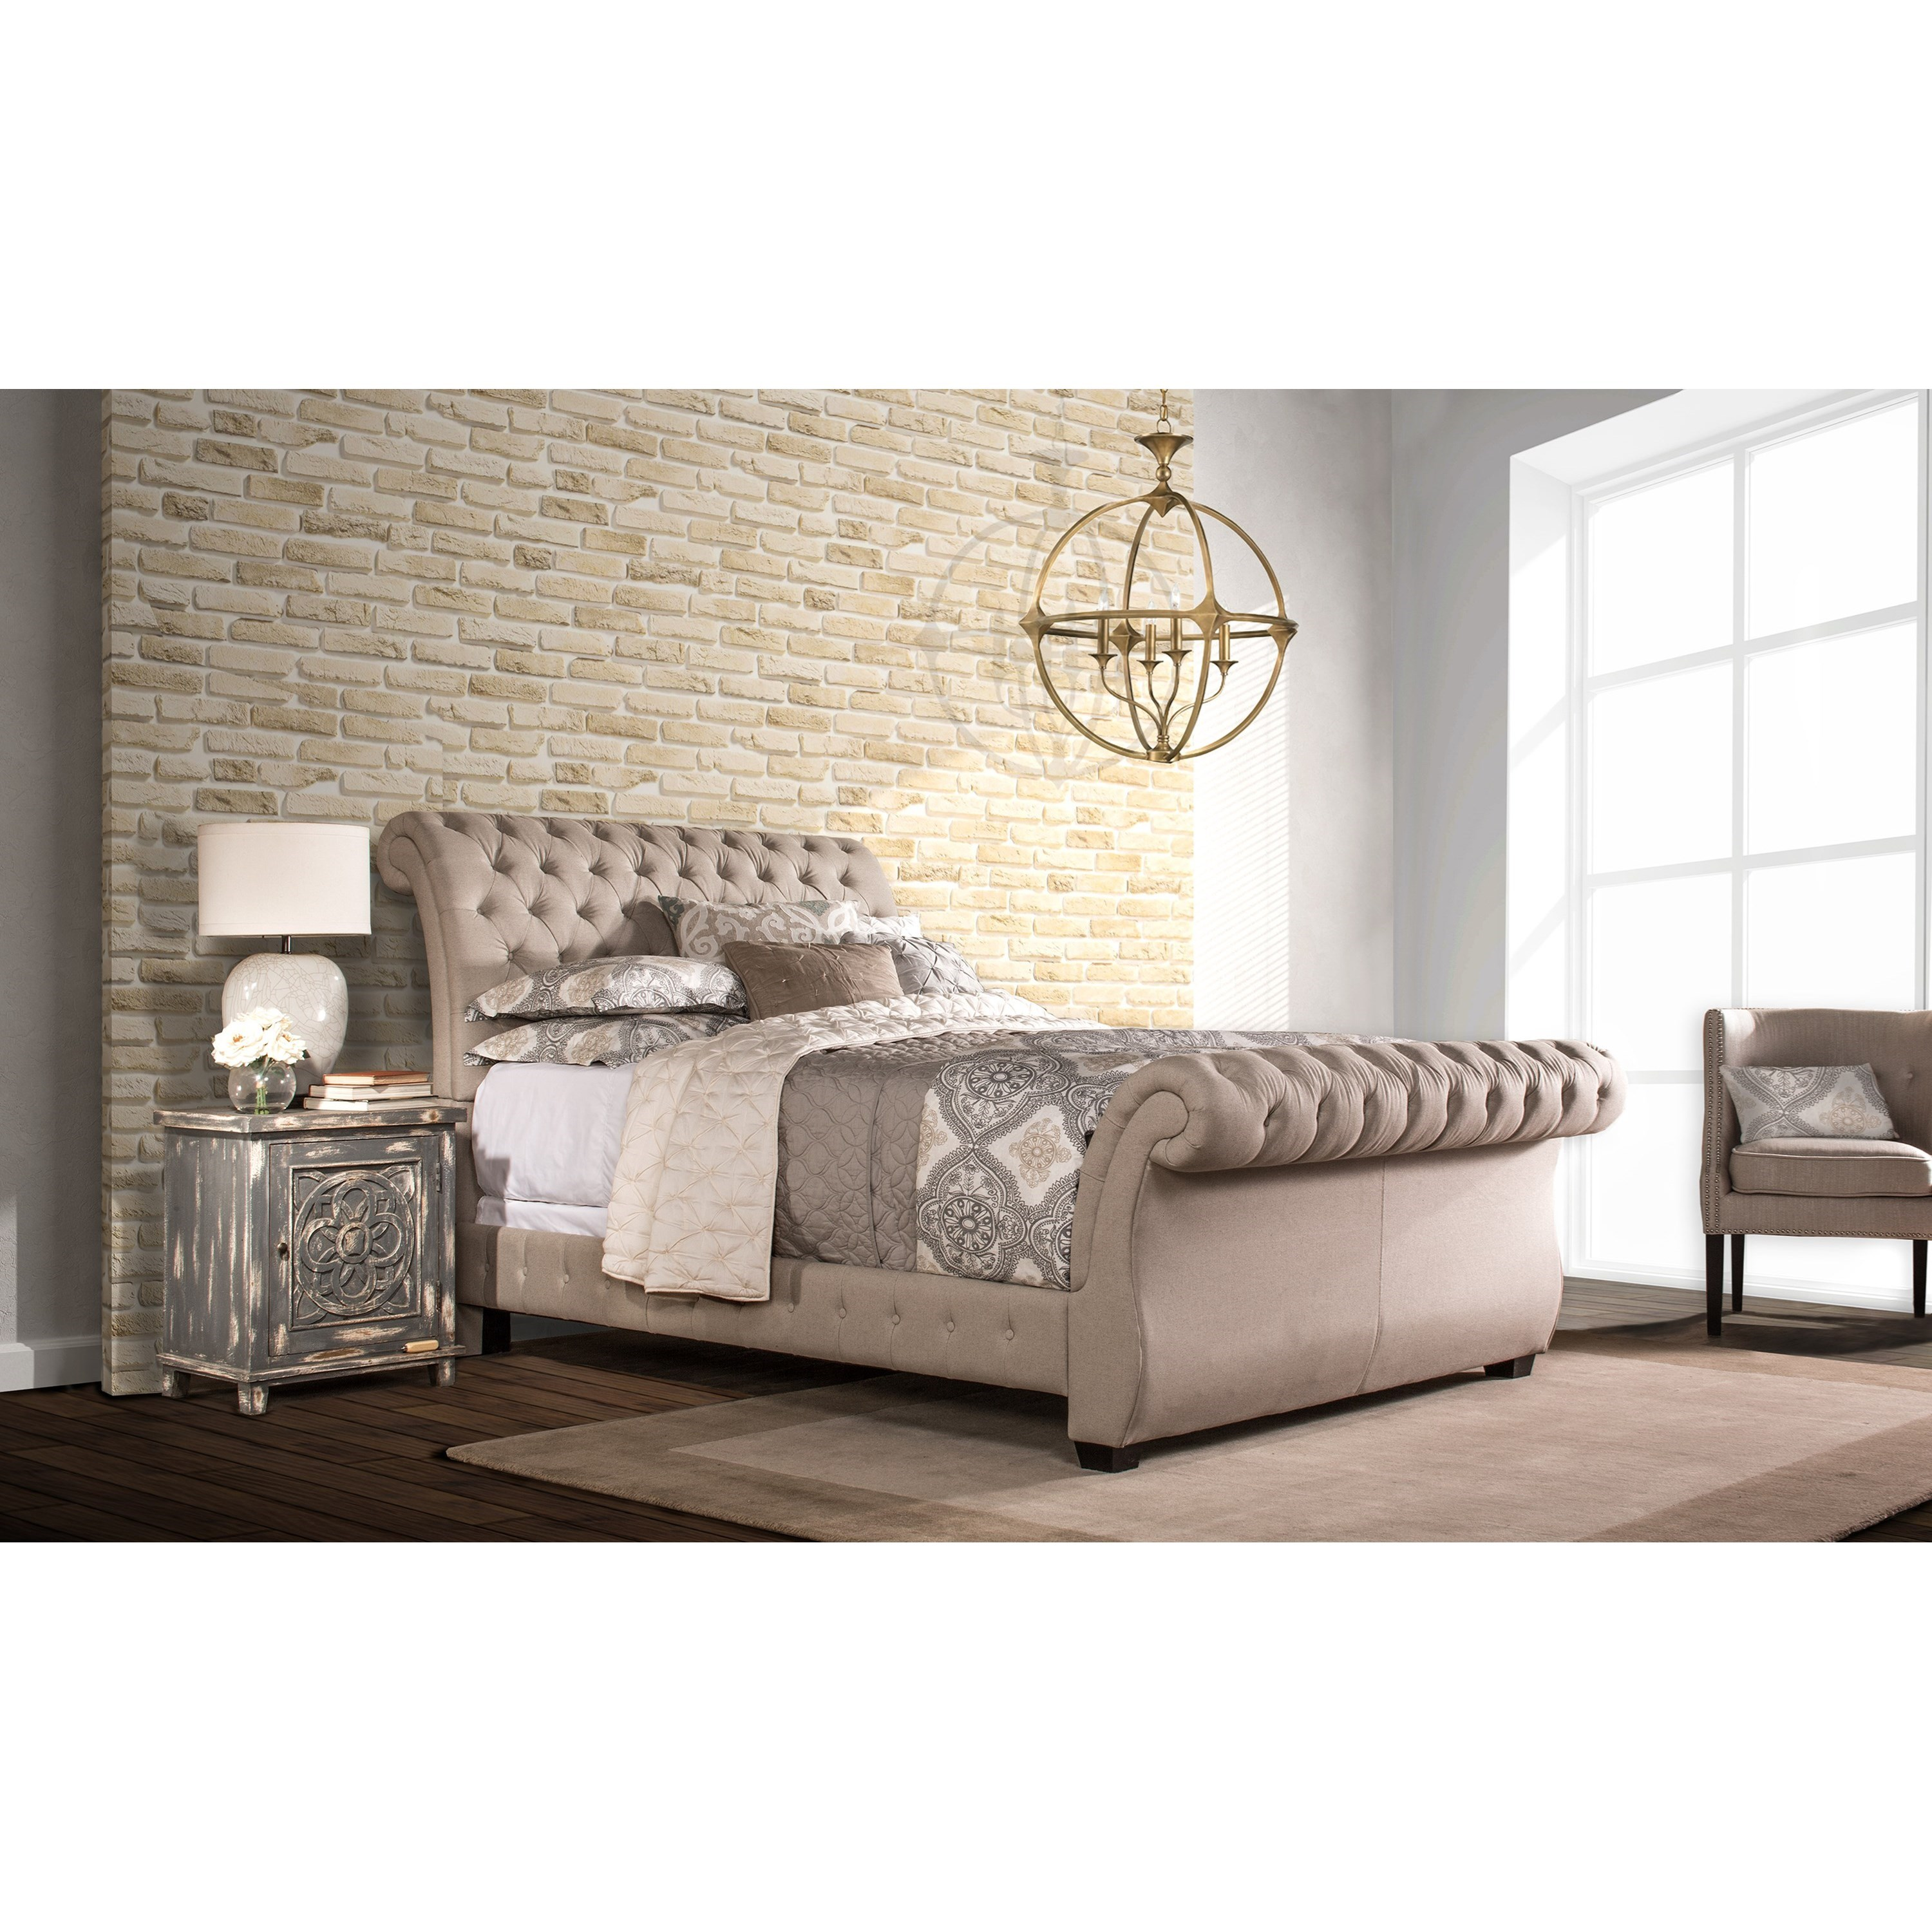 Hillsdale Upholstered Beds 1118BQRL Queen Bombay Upholstered Bed ...